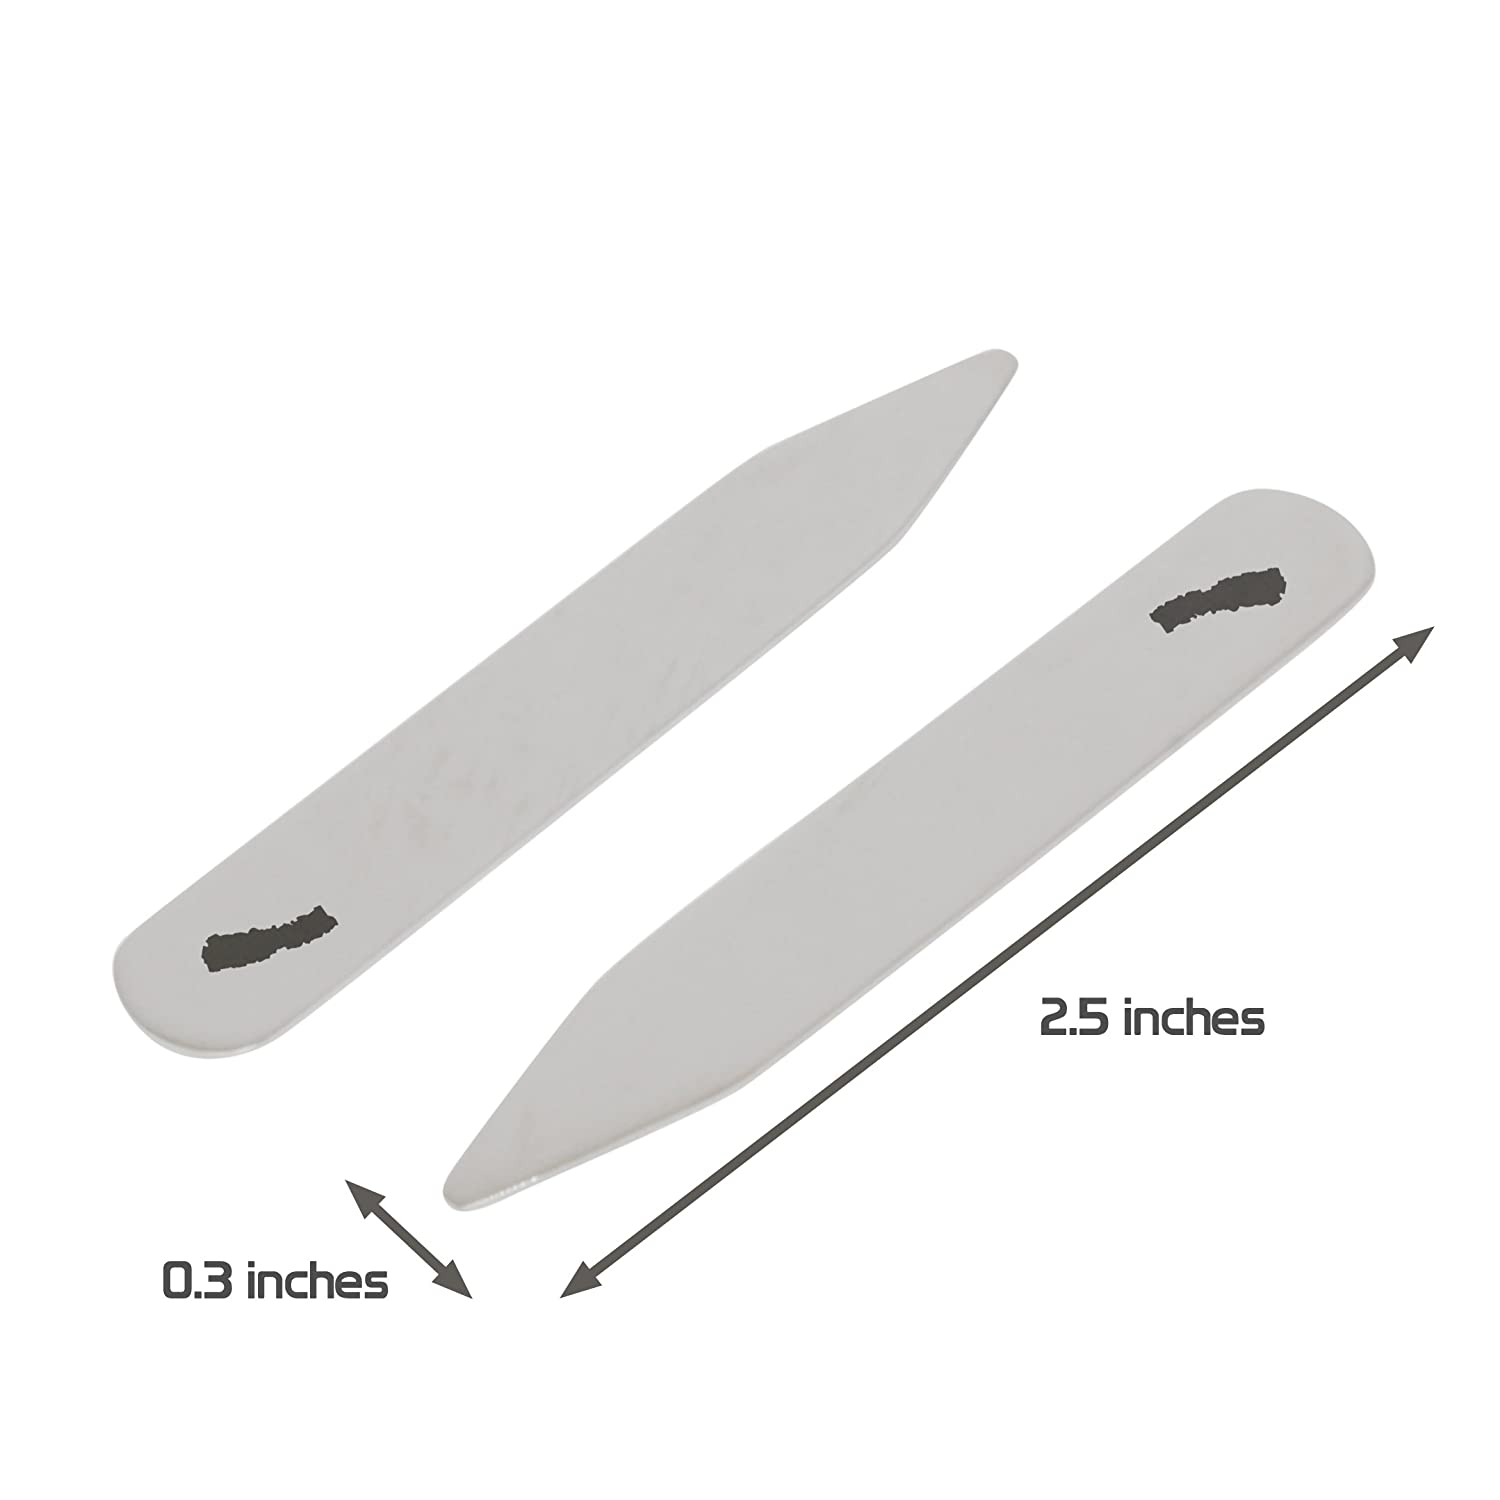 2.5 Inch Metal Collar Stiffeners Made In USA MODERN GOODS SHOP Stainless Steel Collar Stays With Laser Engraved Nepal Design